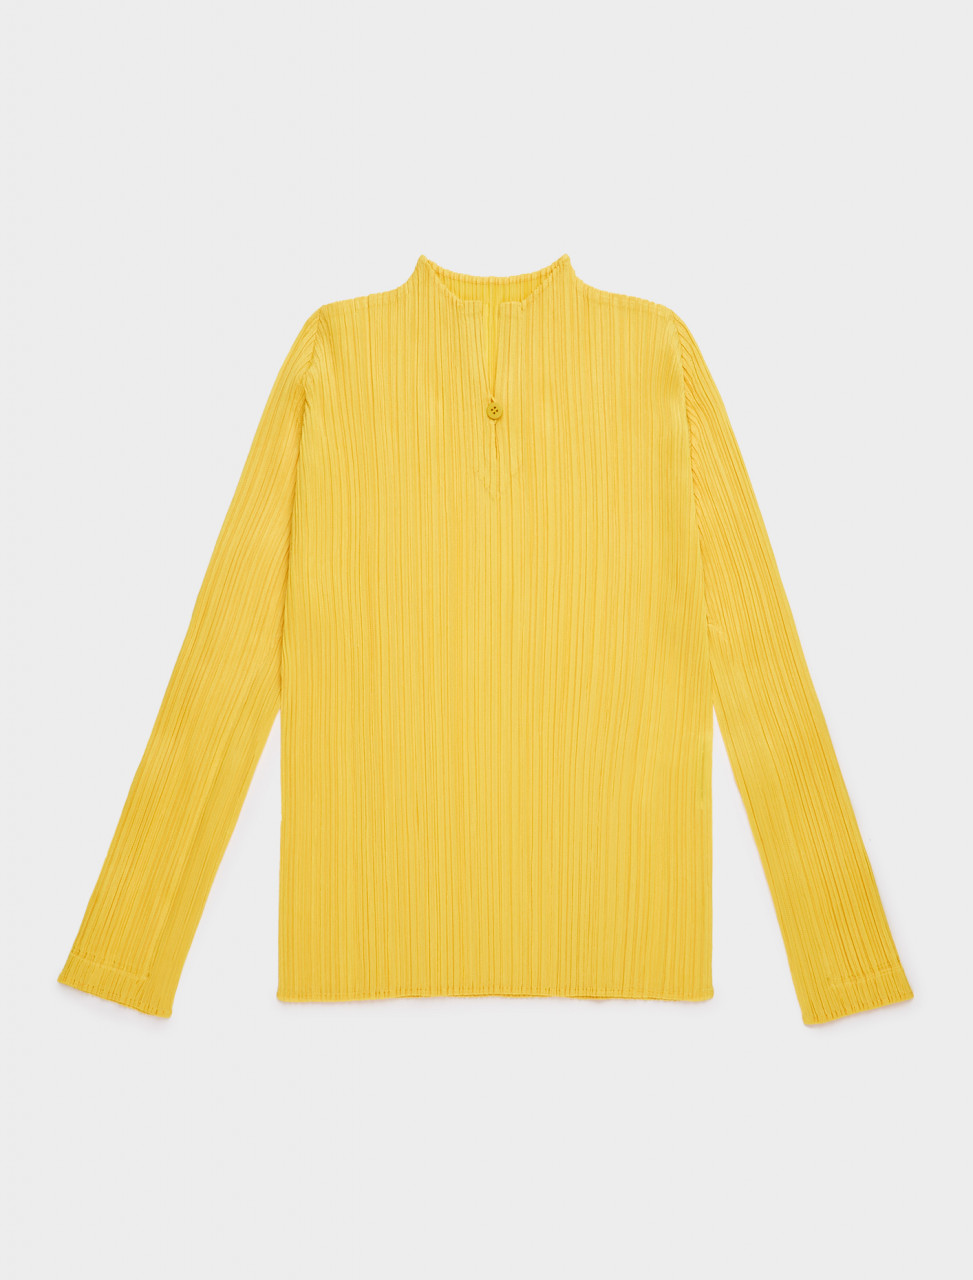 PP08JK221-52 PLEATS PLEASE ISSEY MIYAKE BUTTON V NECK LONG SLEEVE TOP YELLOW 2